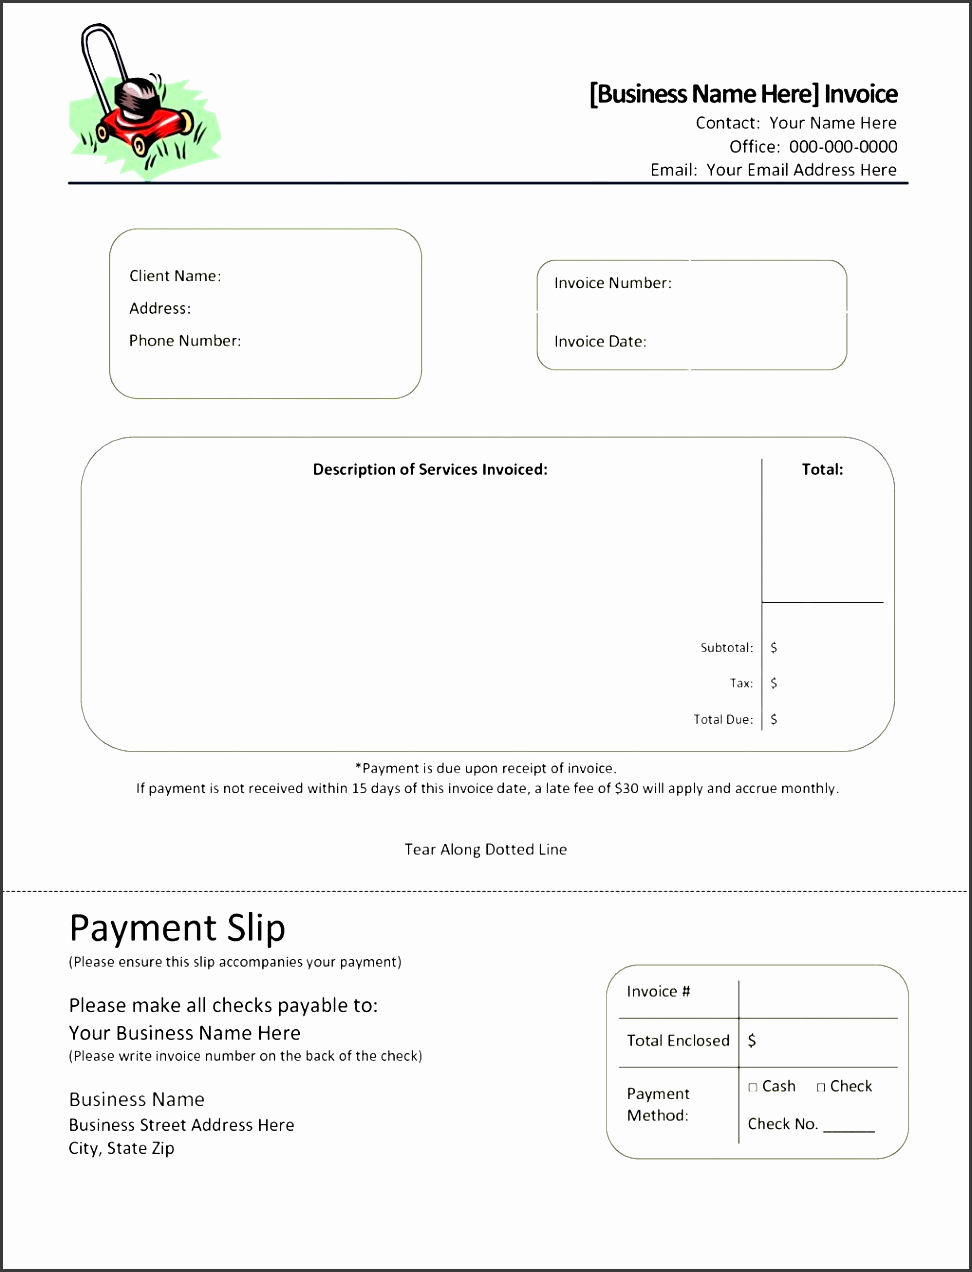 Free towing Invoice Template Elegant 8 Printable Service Invoice Template Sampletemplatess